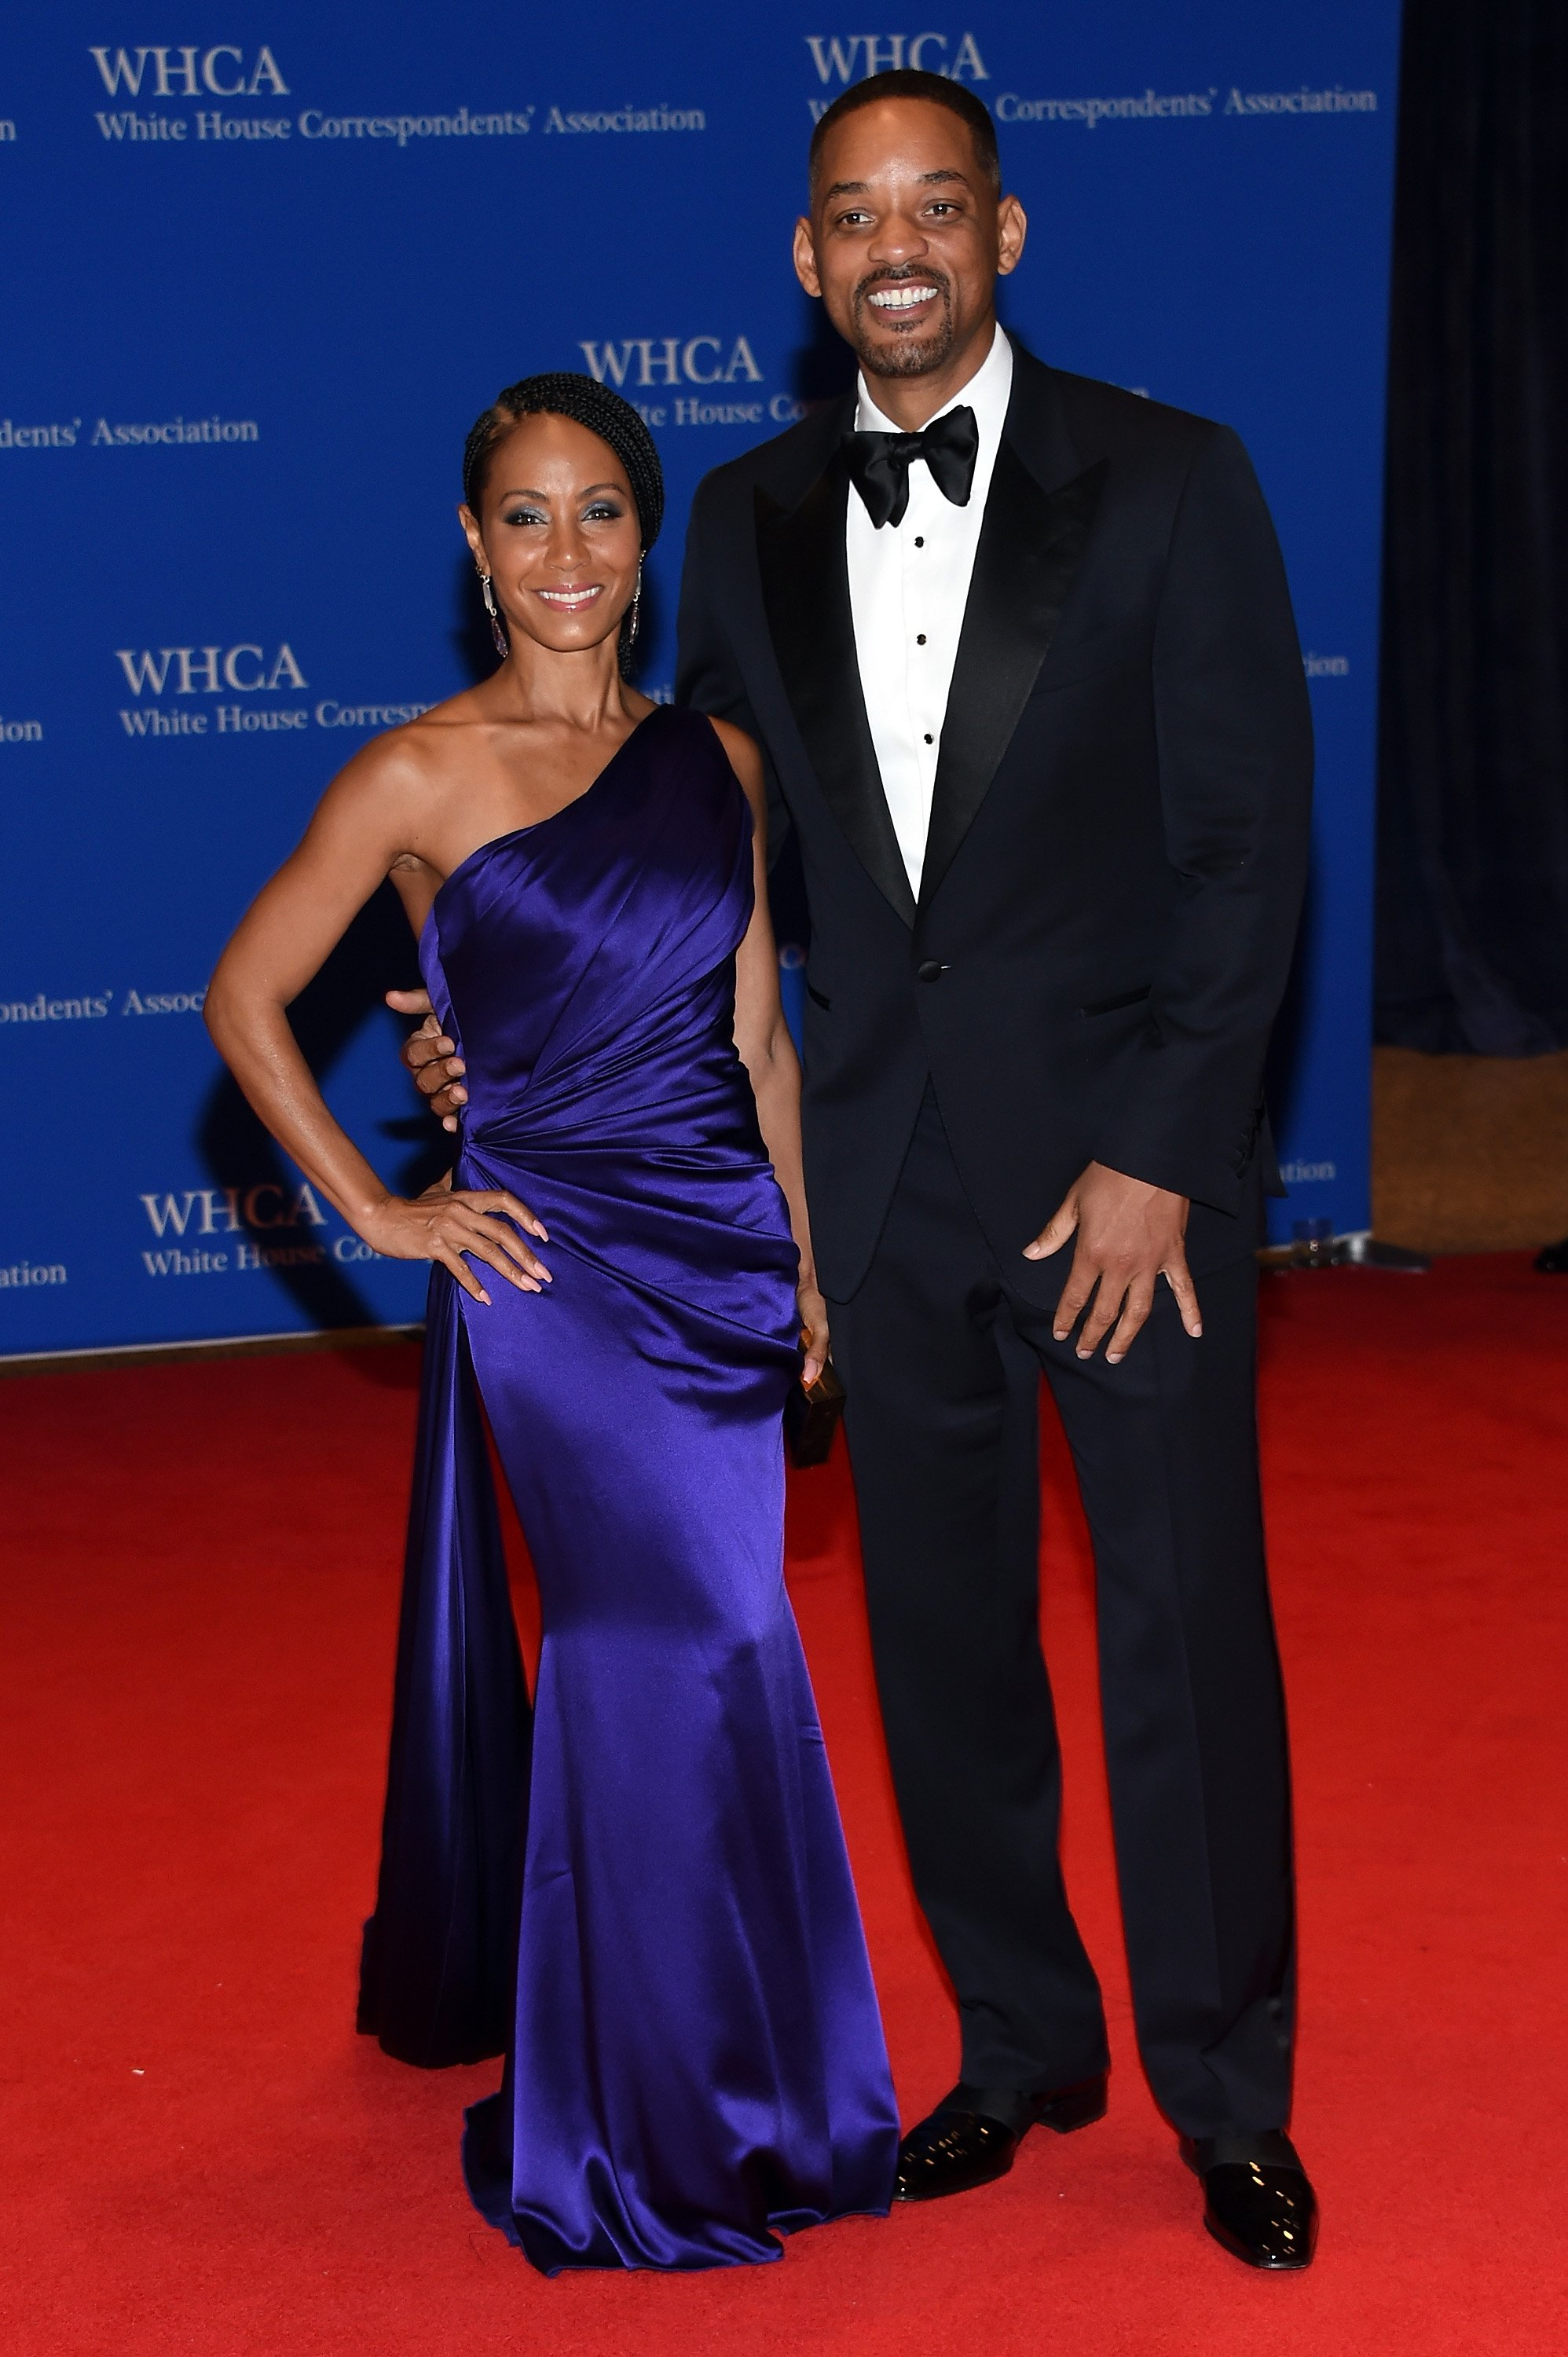 Jada Pinkett Smith & Will Smith at the 102nd White House Correspondents' Association Dinner on April 30, 2016 in Washington, DC. | Photo: Getty Images